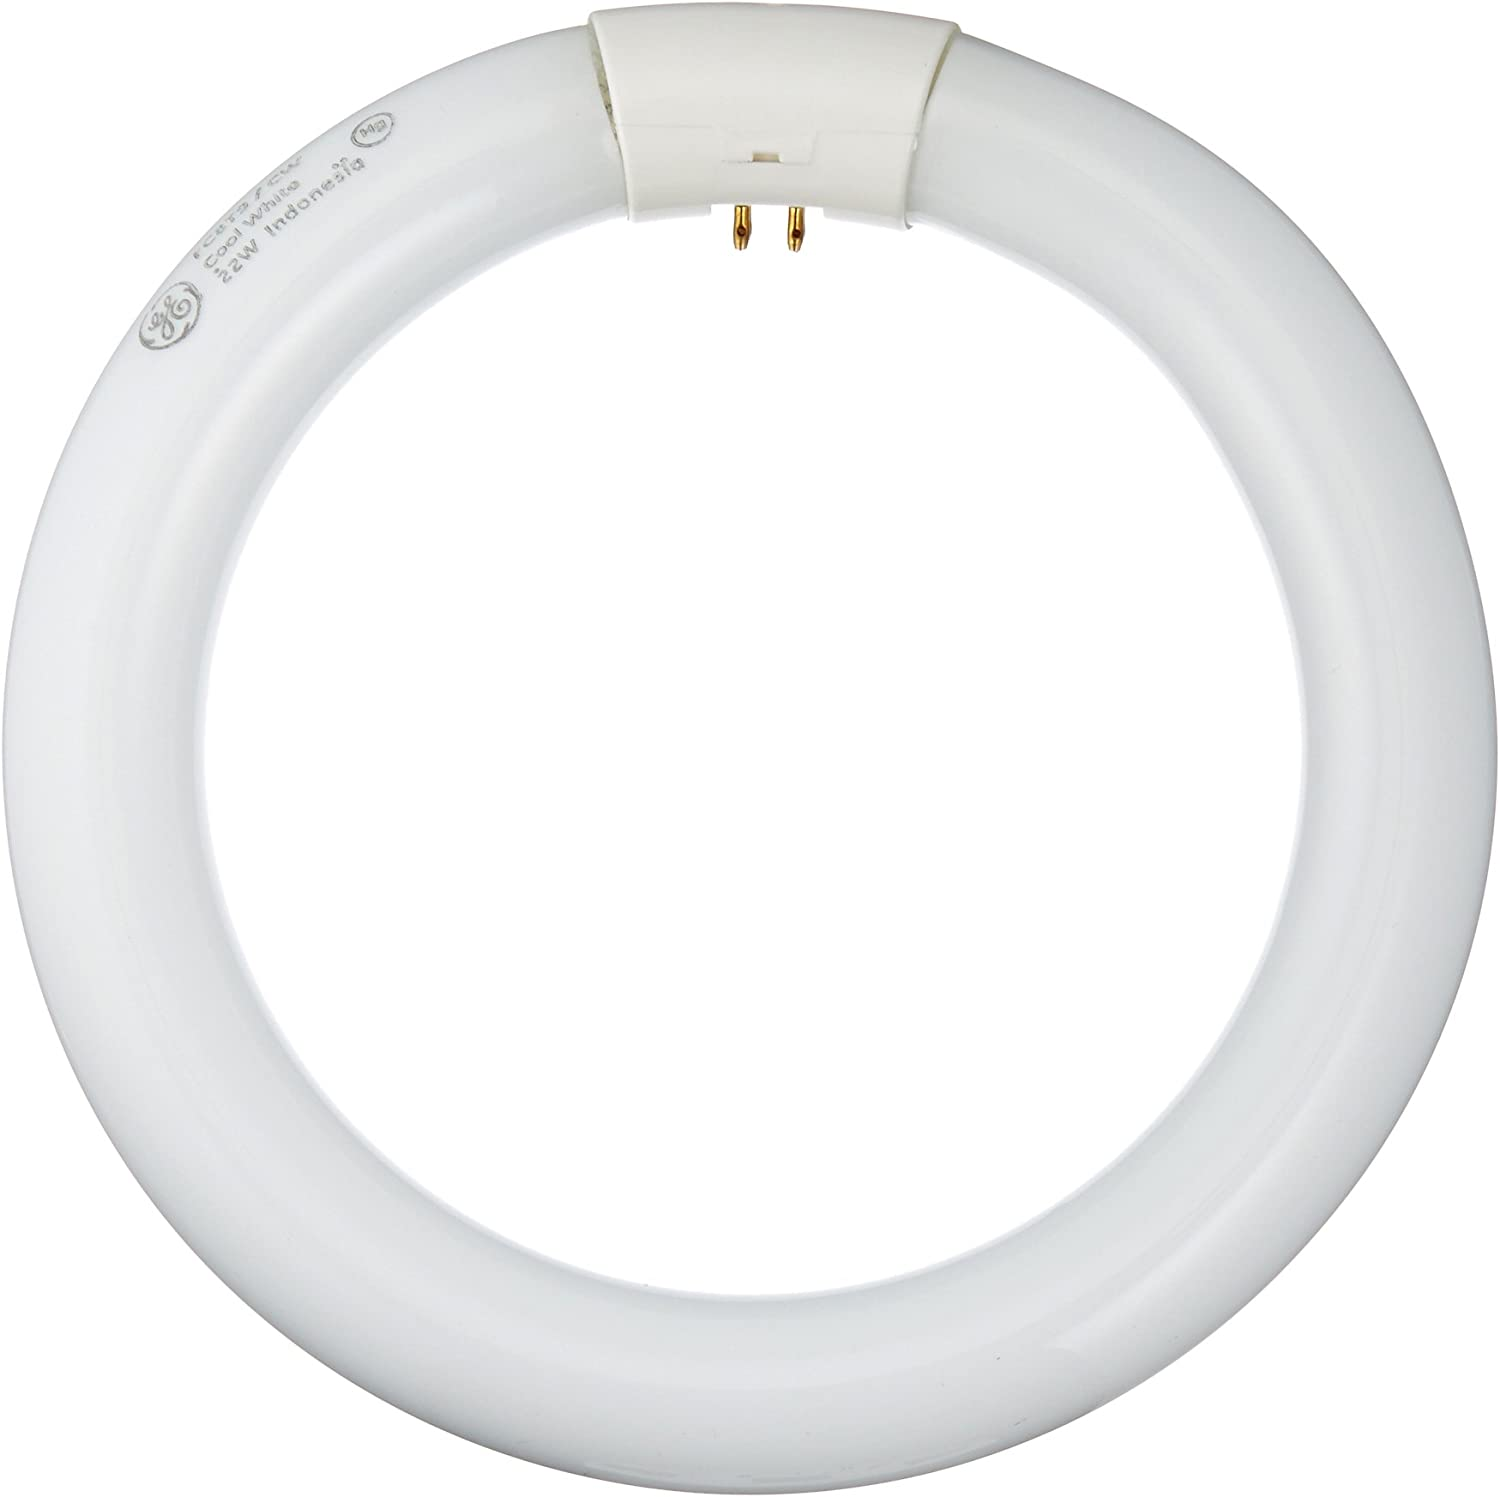 GE Lighting 33774 Cool White 8-Inch Diameter Circline Fluorescent T9 Bulb, 22-Watt